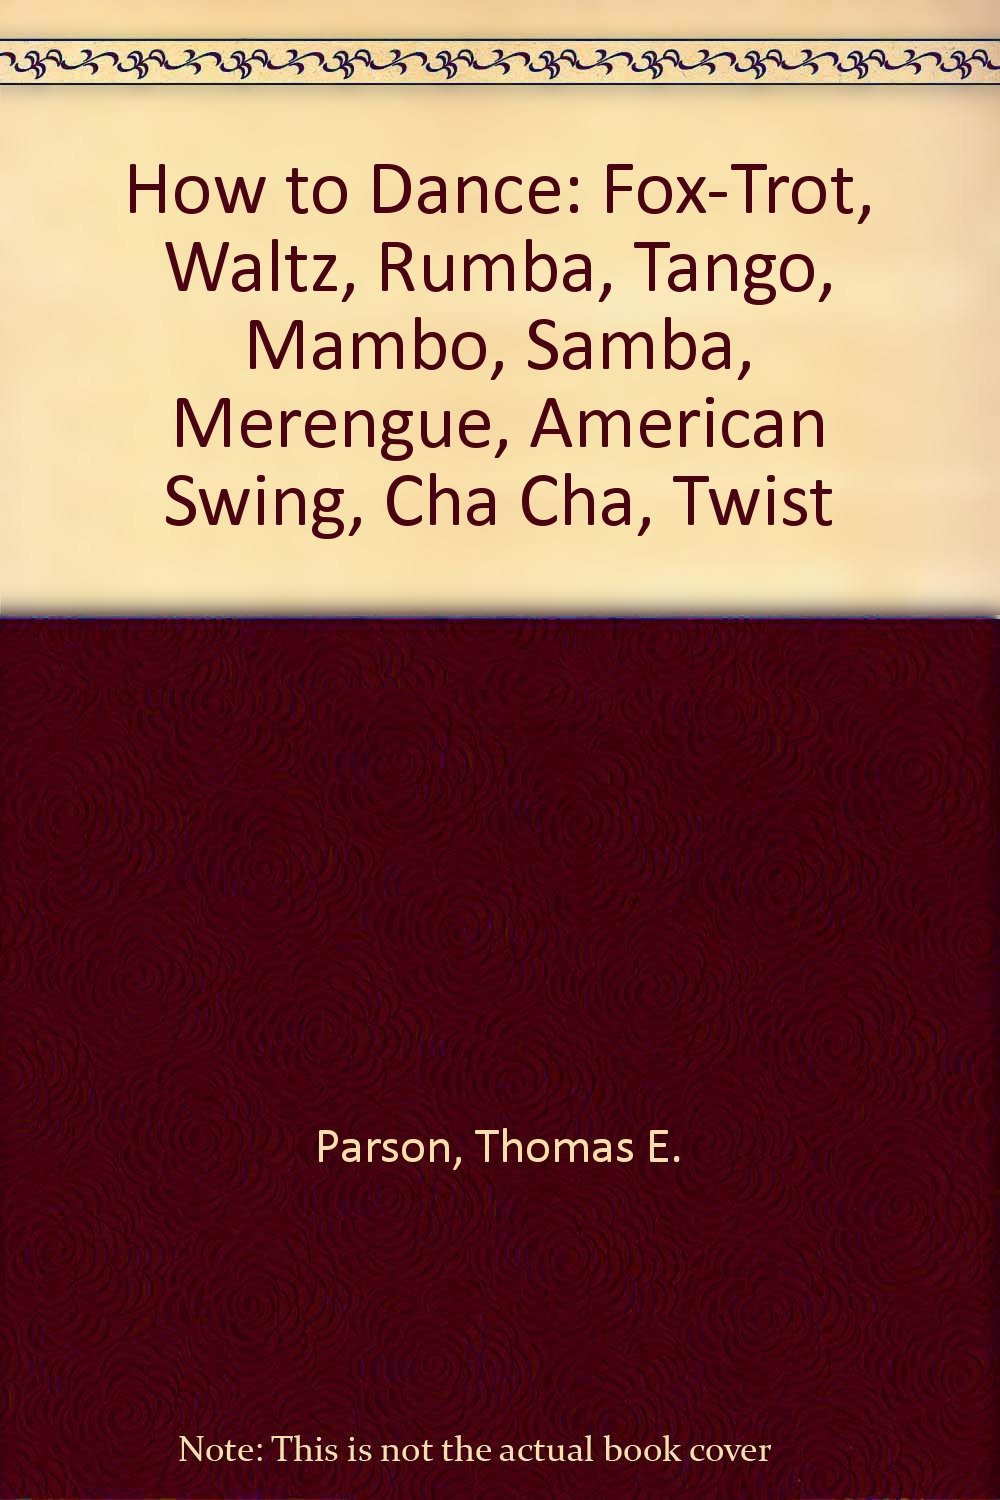 how-to-dance-fox-trot-waltz-rumba-tango-mambo-samba-merengue-american-swing-cha-cha-twist